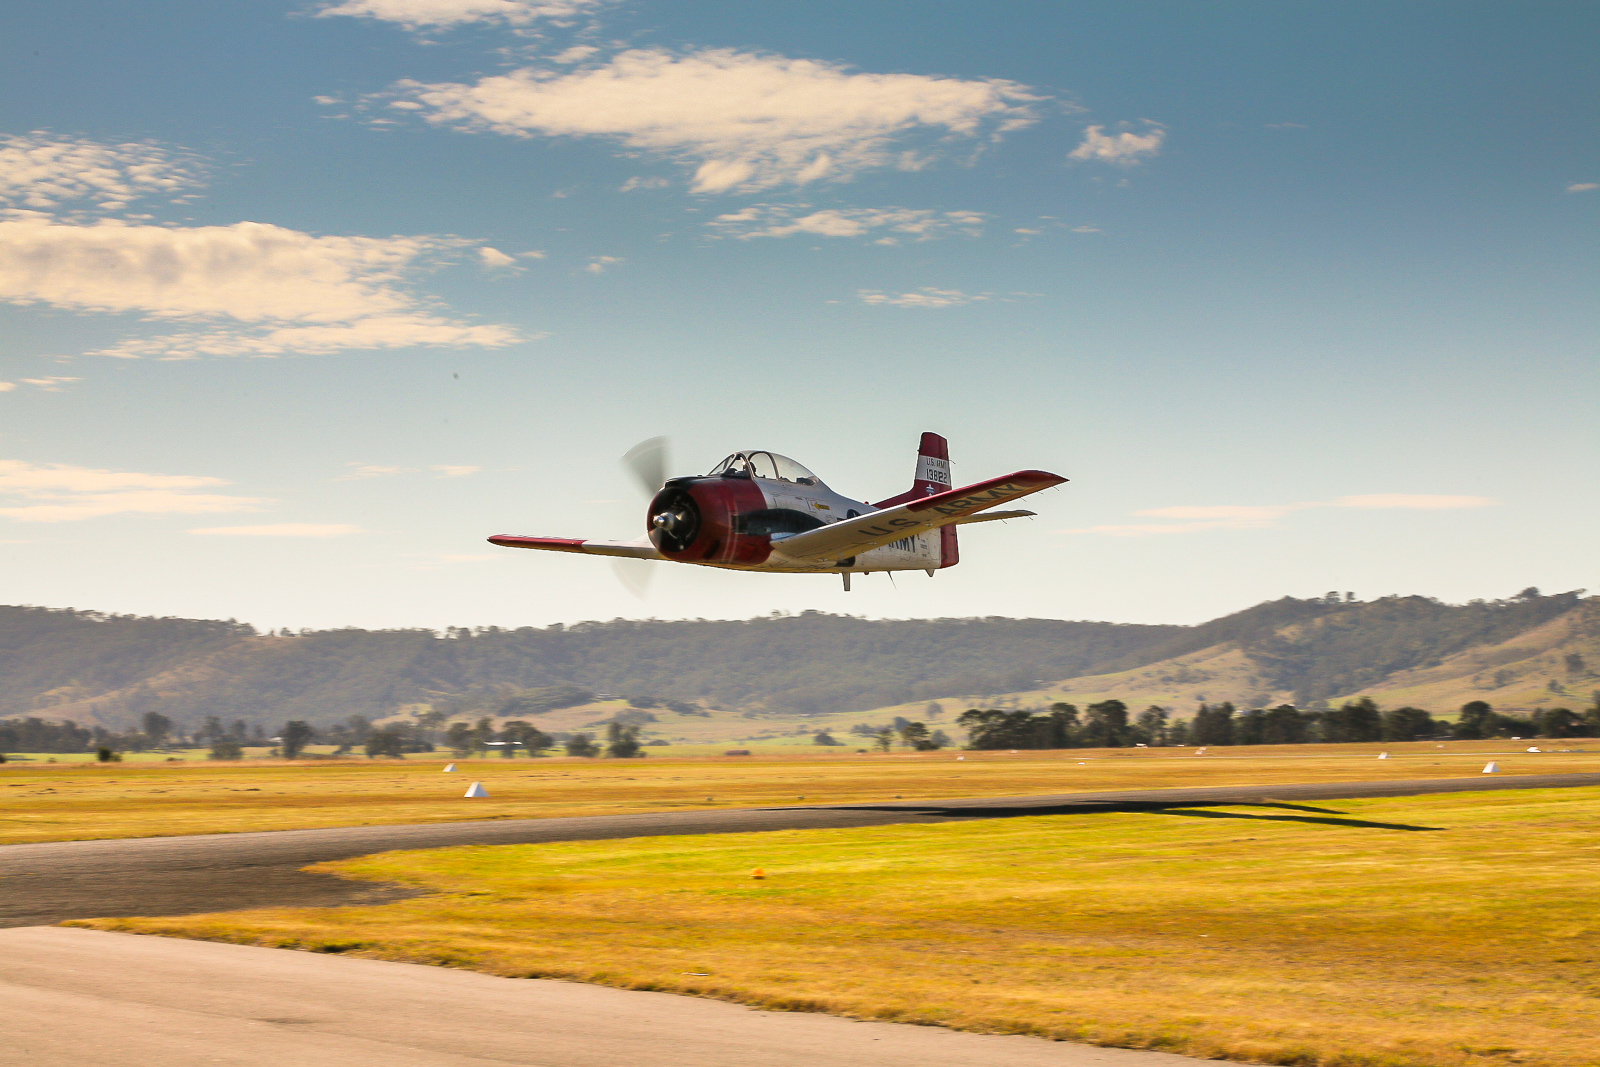 Paul Bennet Airshows' T-28 Trojan on takeoff. (photo by Phil Buckley)